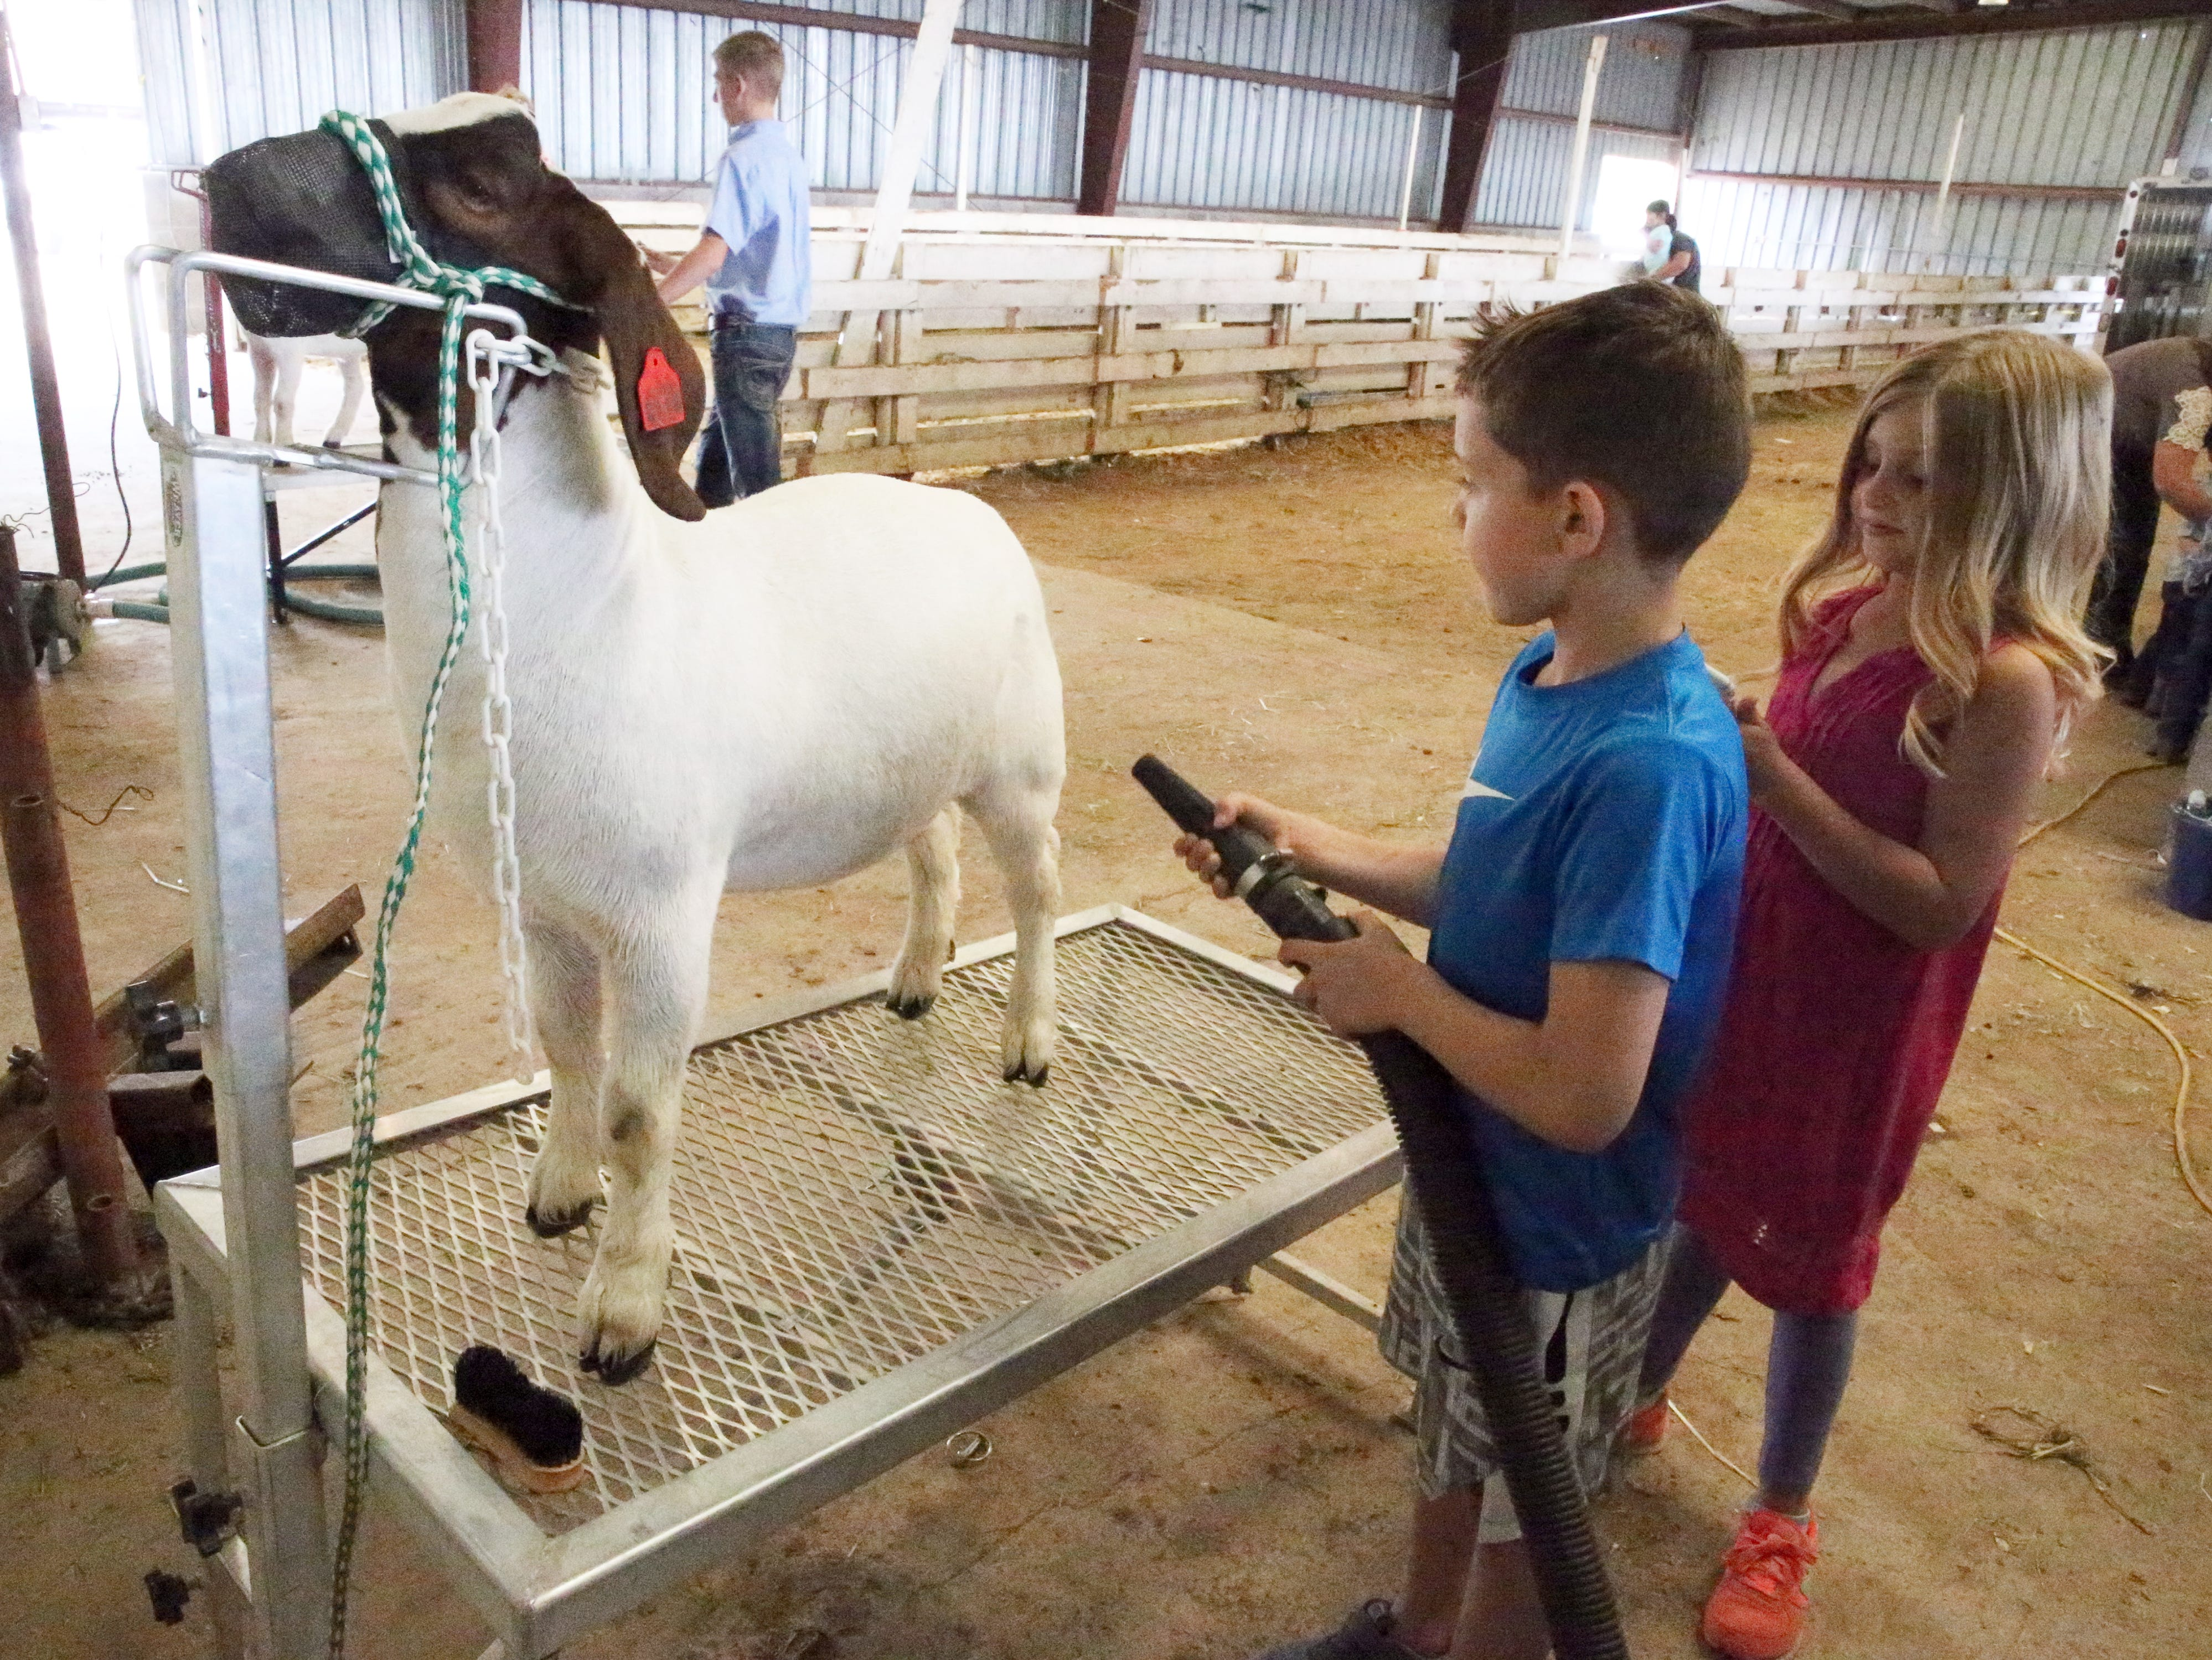 Jace Acevedo, 8, of Las Cruces dries a market goat for showing Saturday. At right is his sister, Kyler Tharp.